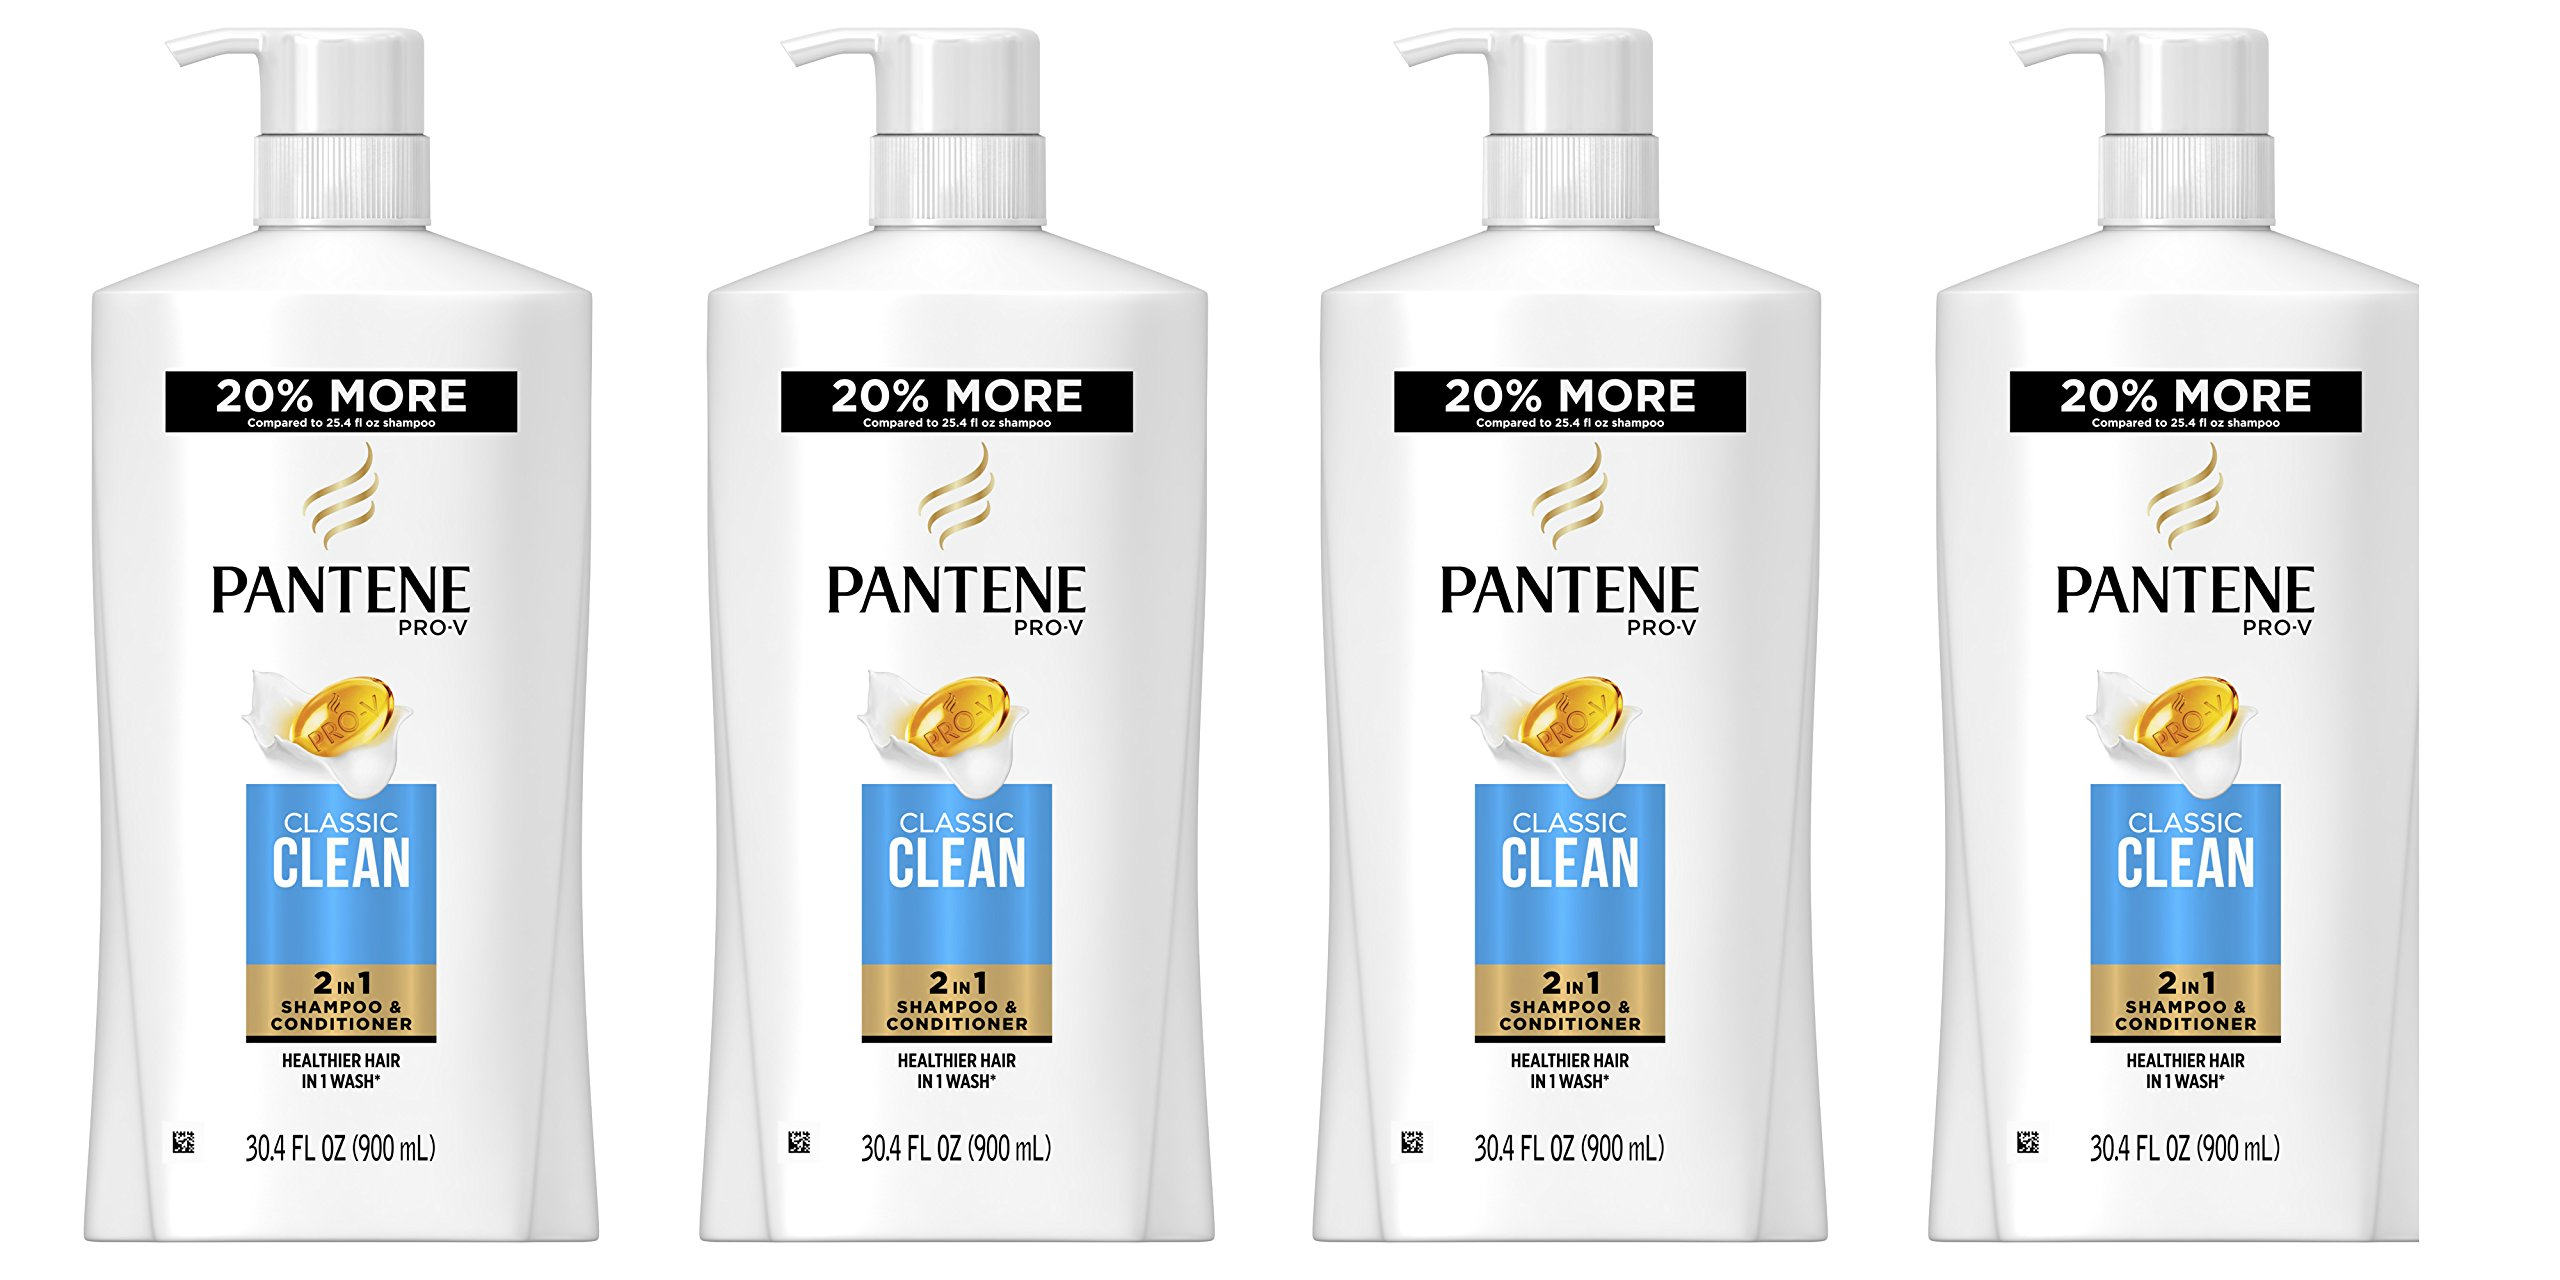 Pantene Pro-V Classic Clean 2-in-1 Shampoo and Conditioner, 30.4 Fluid Ounce (Pack of 4) (Packaging May Vary)